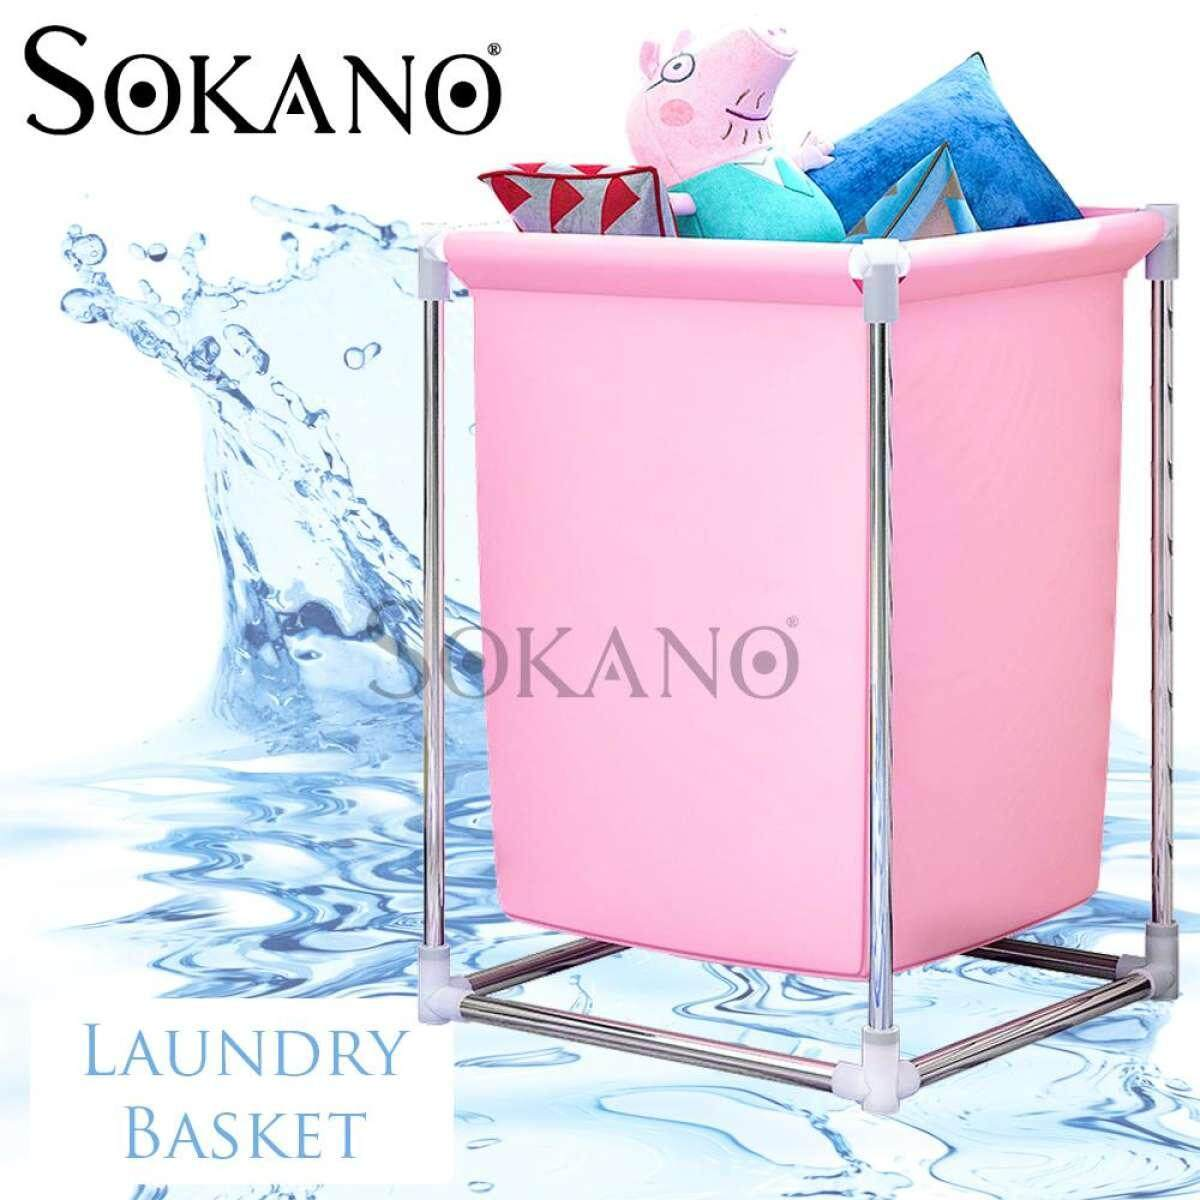 SOKANO S3 Large Capacity Laundry Basket with Steel Support and Washable Non Woven Fabric Basket